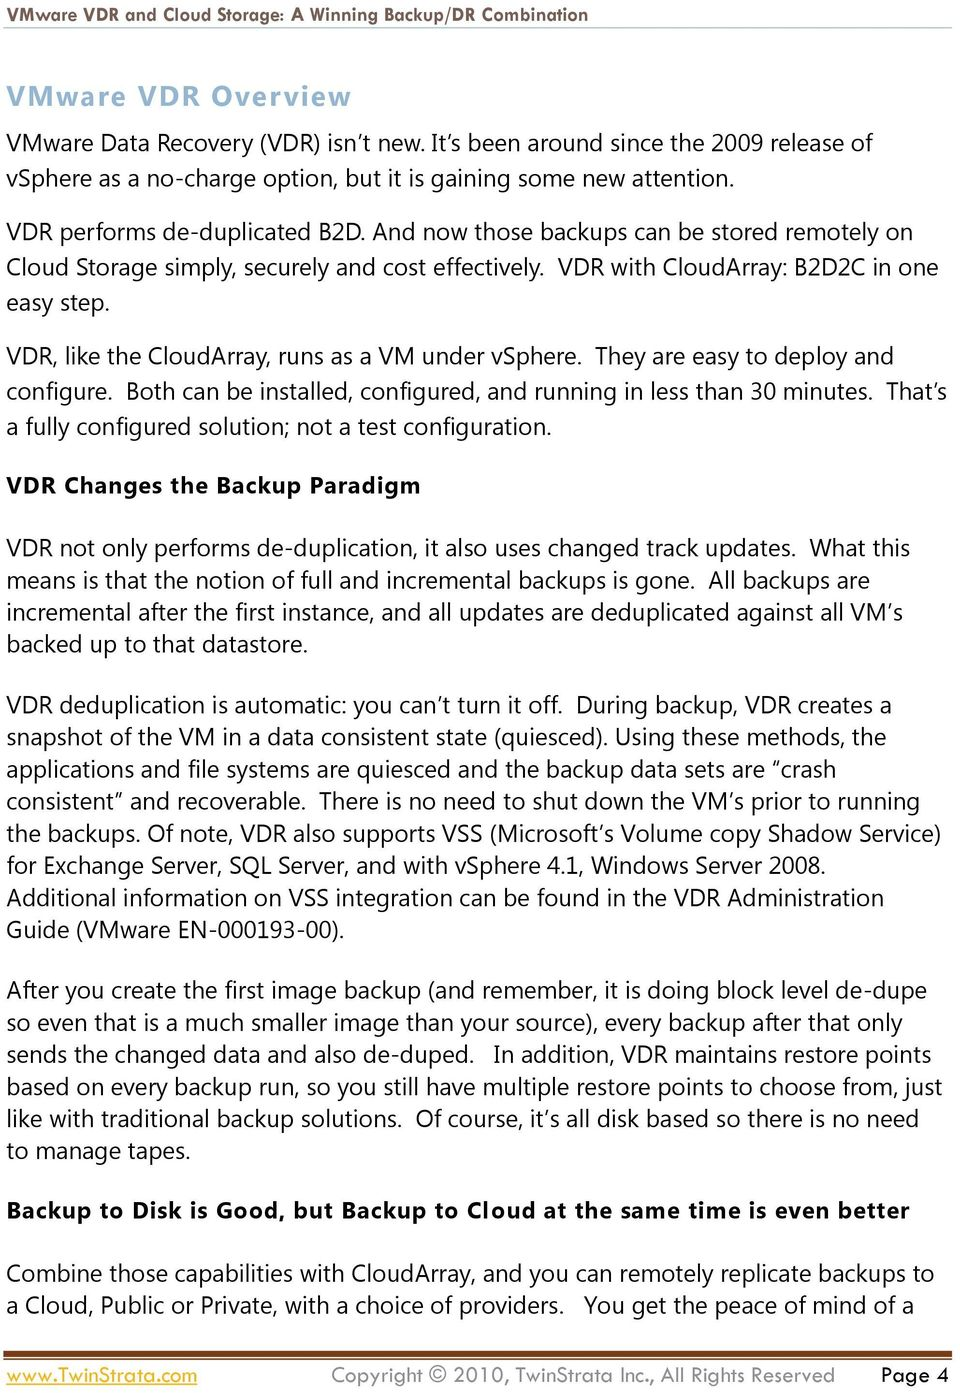 VDR, like the CloudArray, runs as a VM under vsphere. They are easy to deploy and configure. Both can be installed, configured, and running in less than 30 minutes.